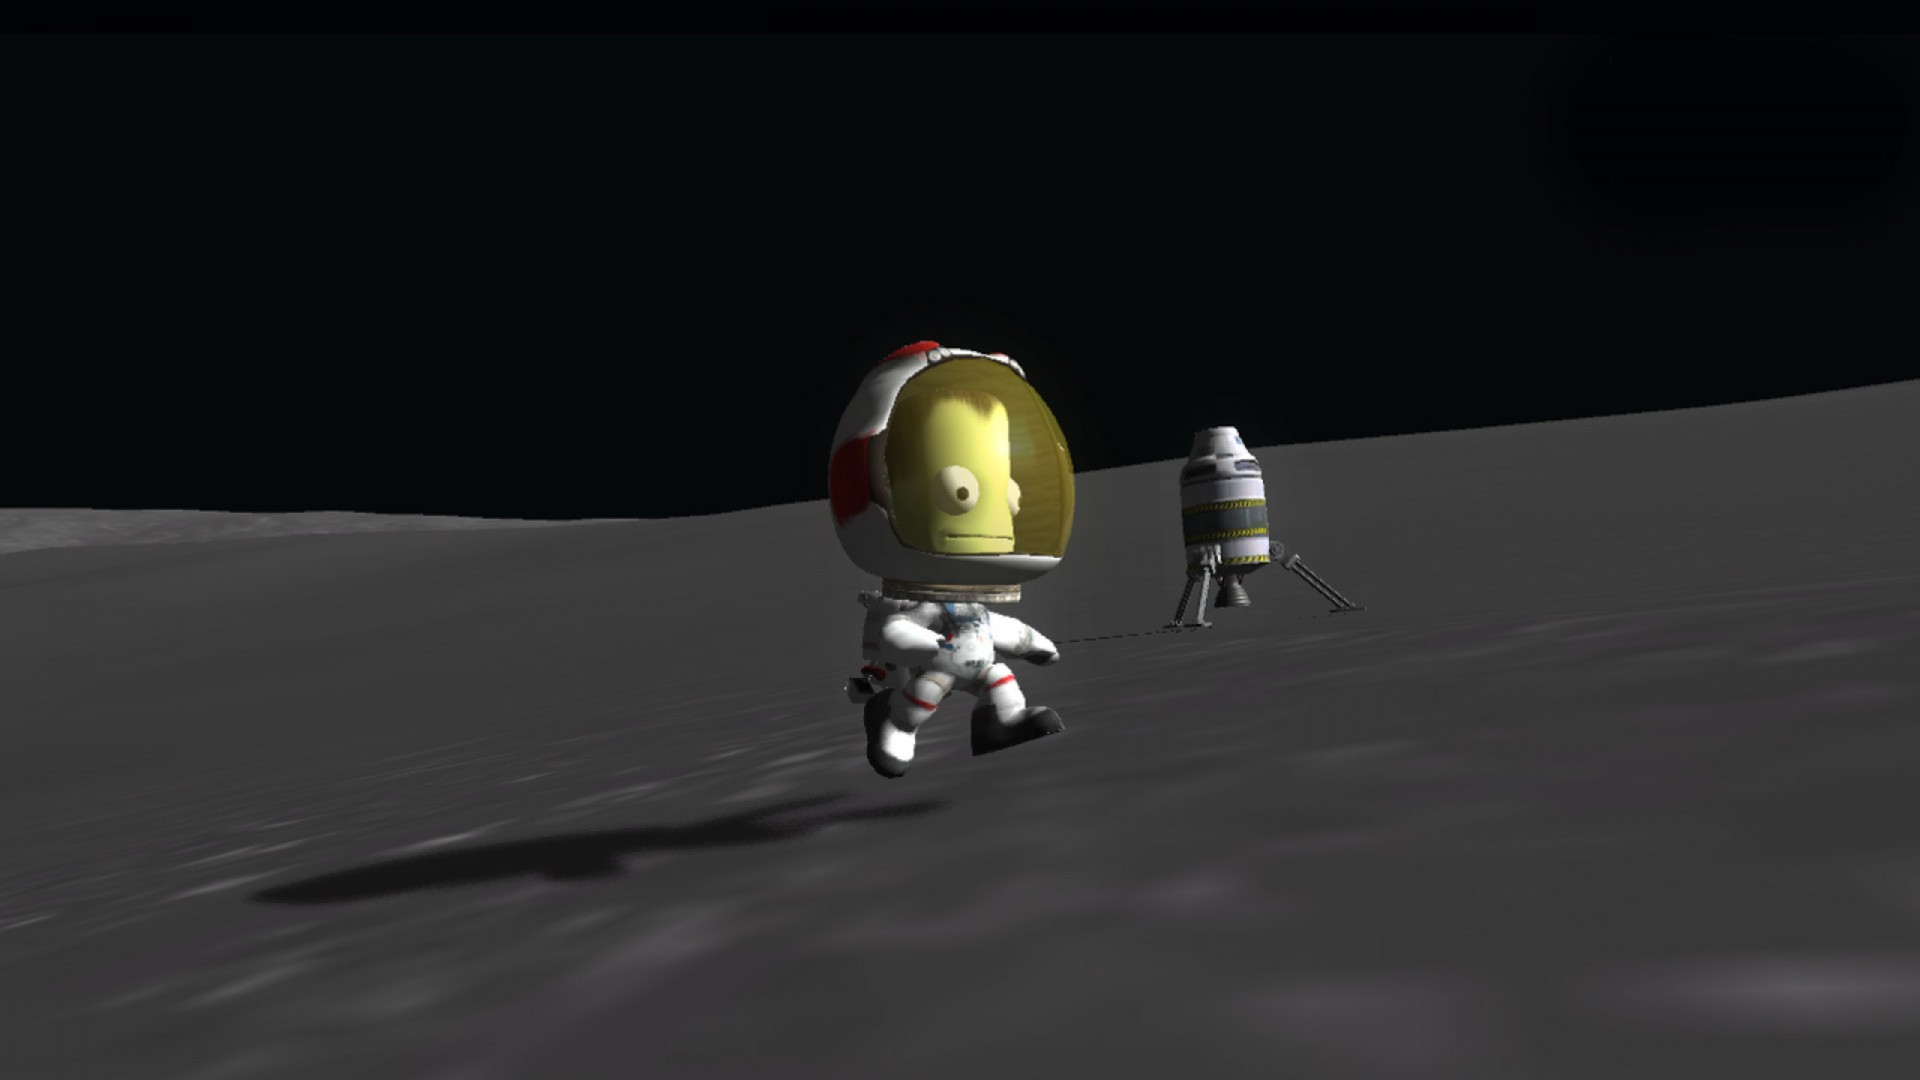 EVA performed in versions prior to 0.16? - KSP Discussion ...